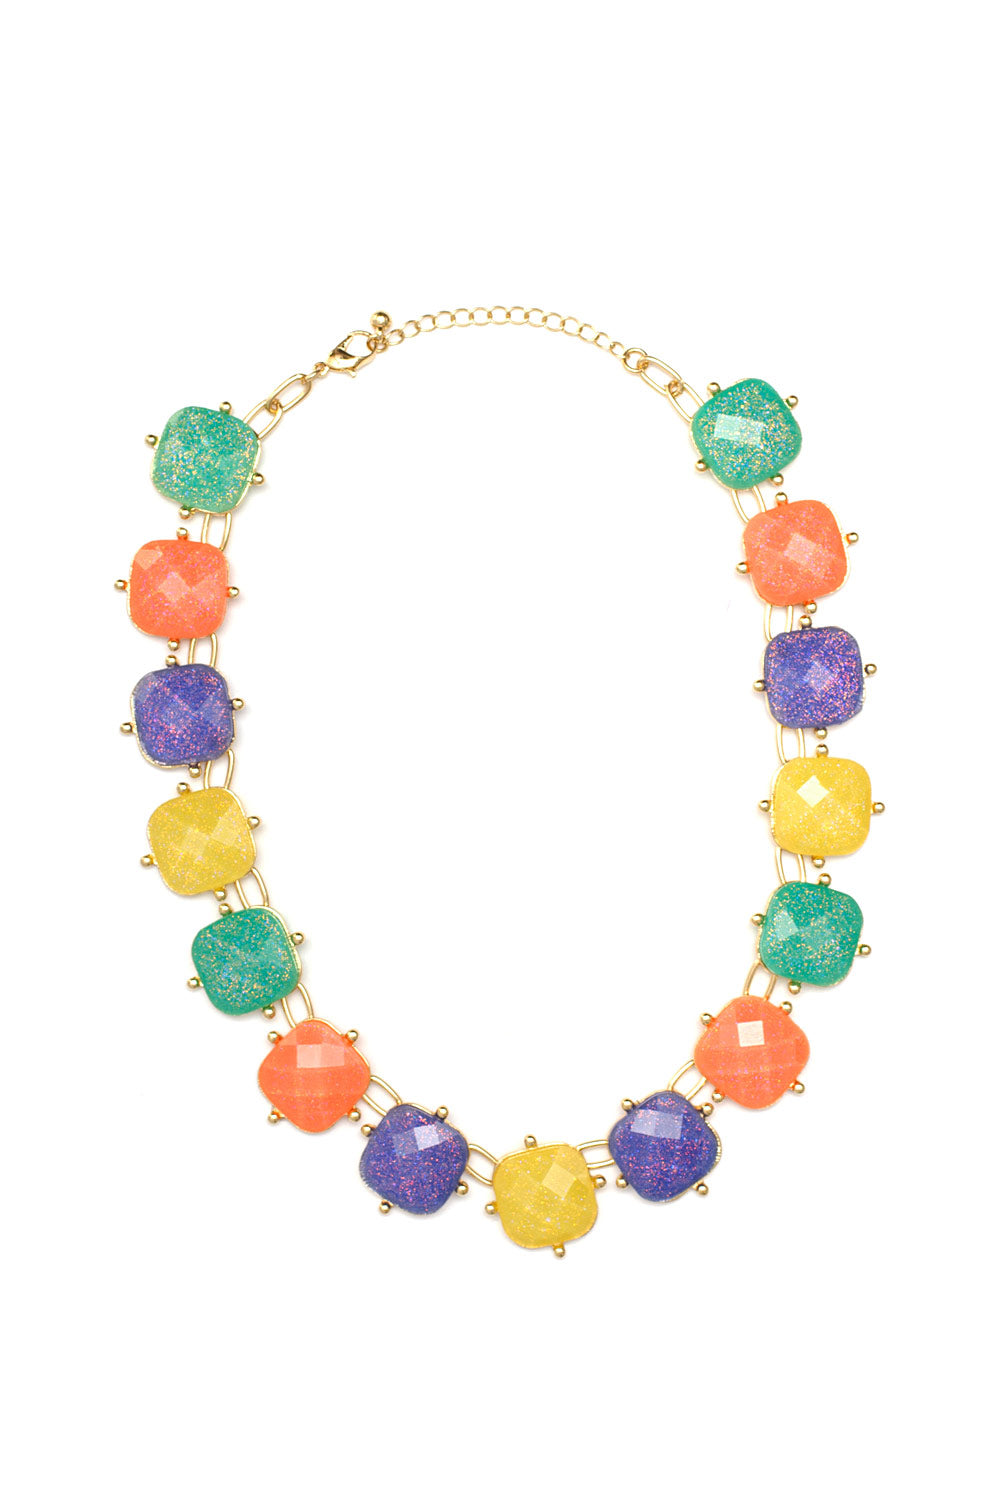 Type 1 Candy Land Necklace